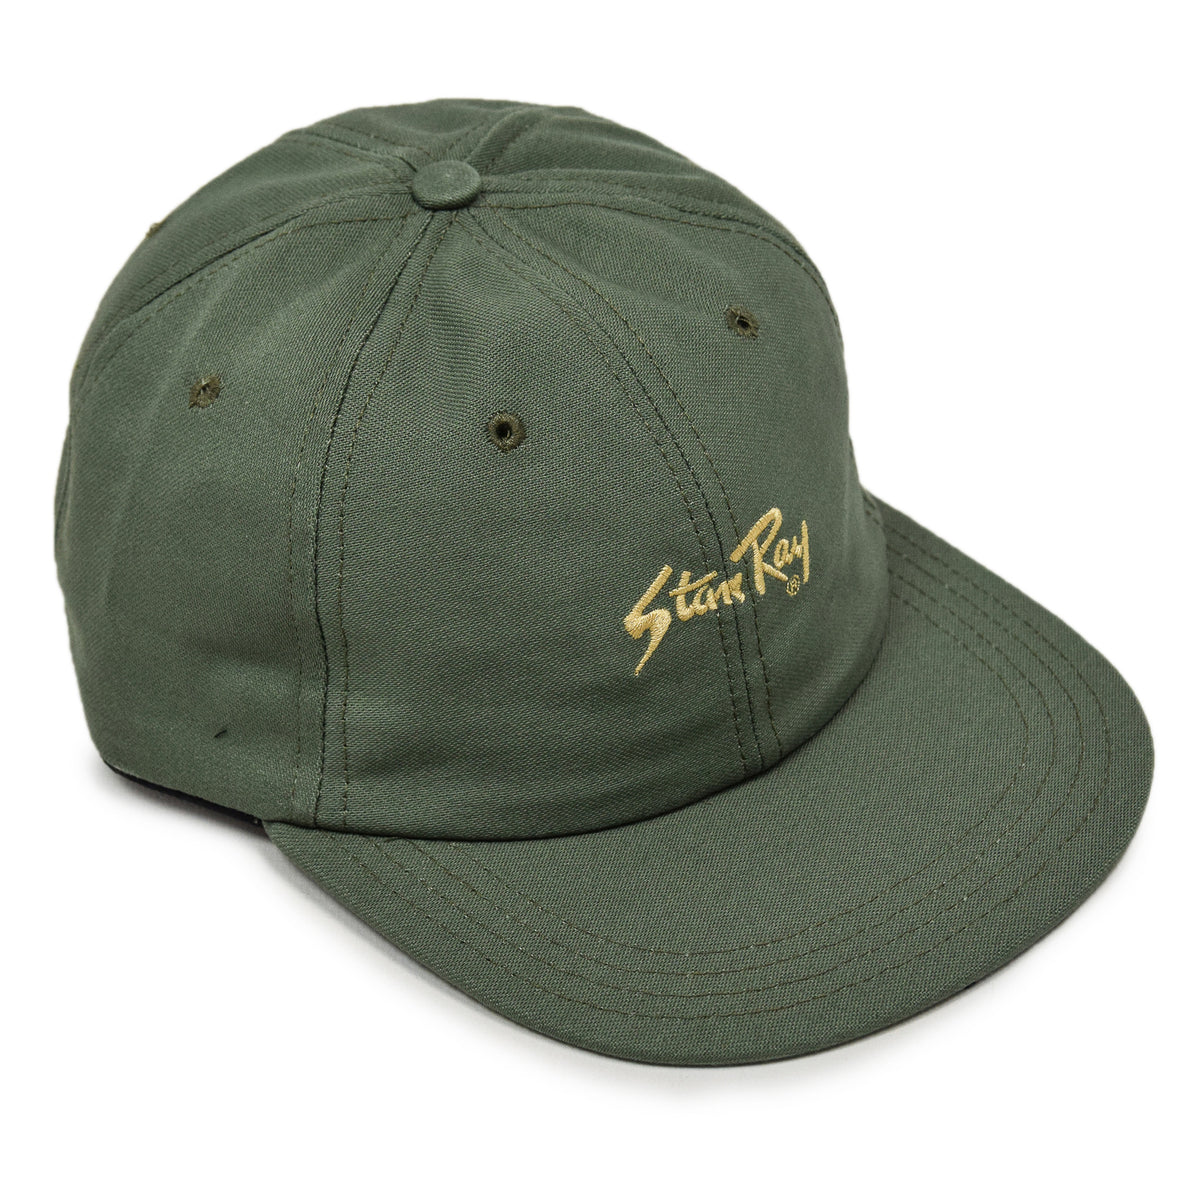 Stan Ray Ball Cap Olive Sateen Made In USA front